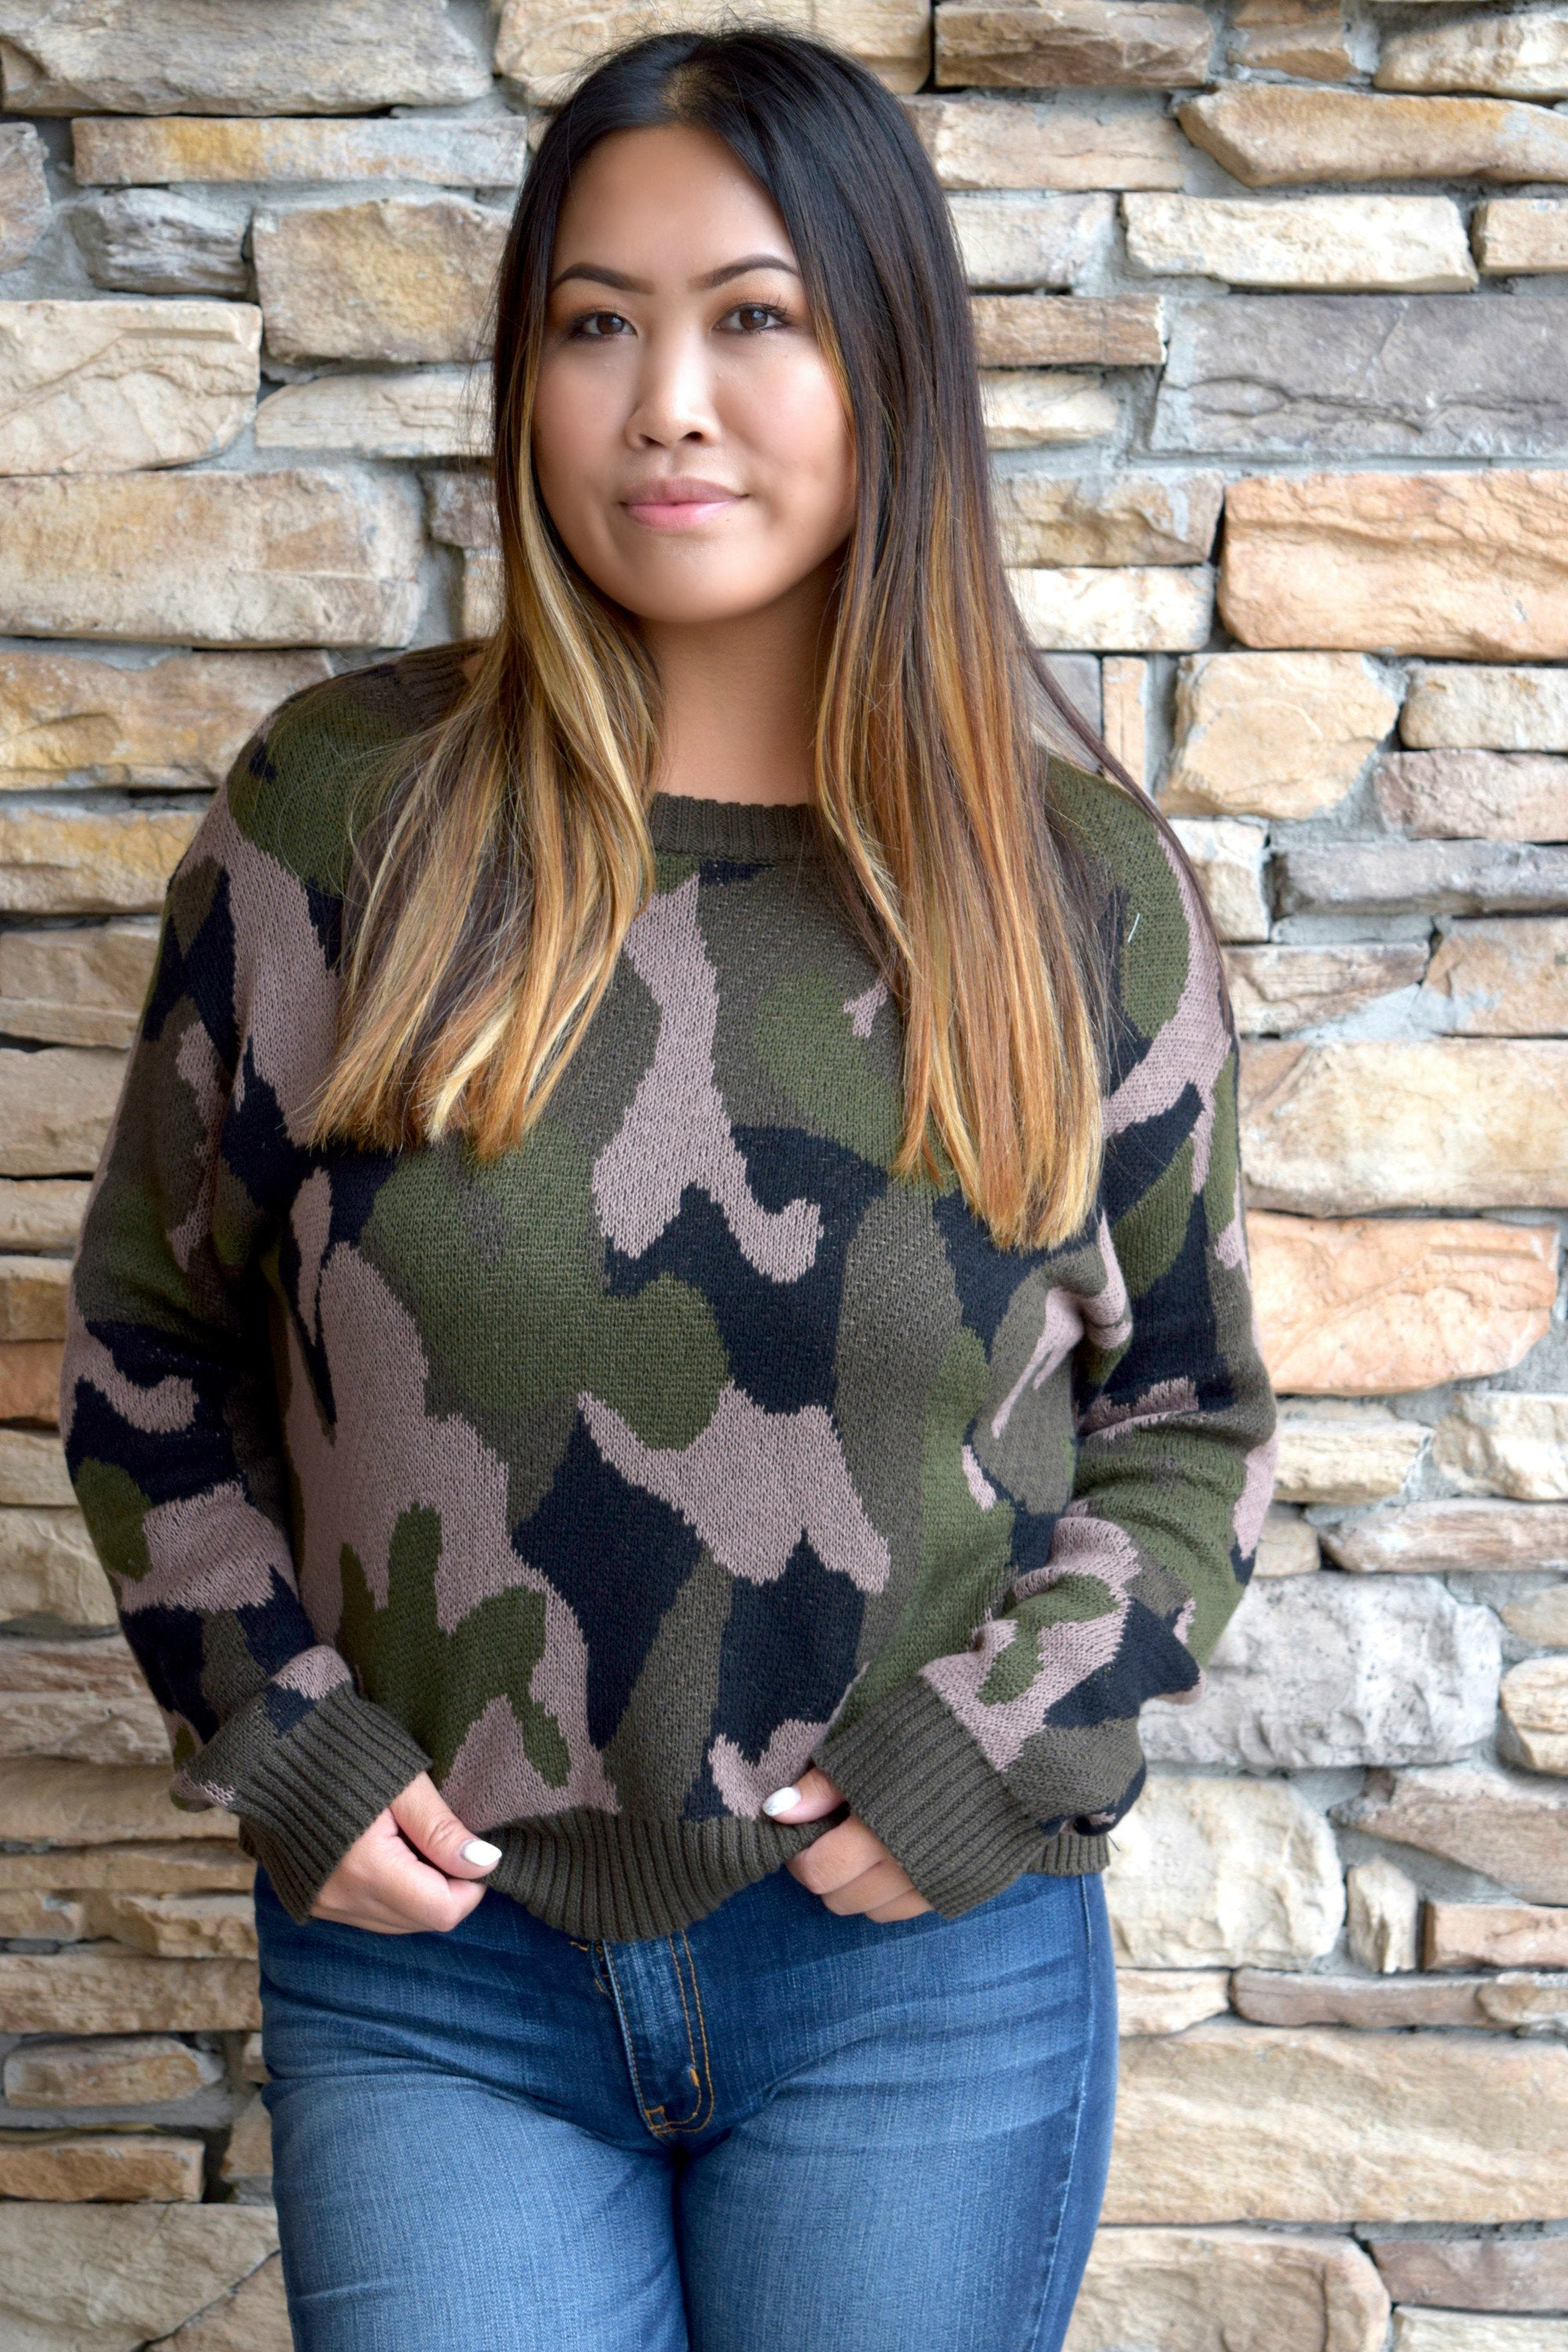 ARMY OF ONE CAMO SWEATER